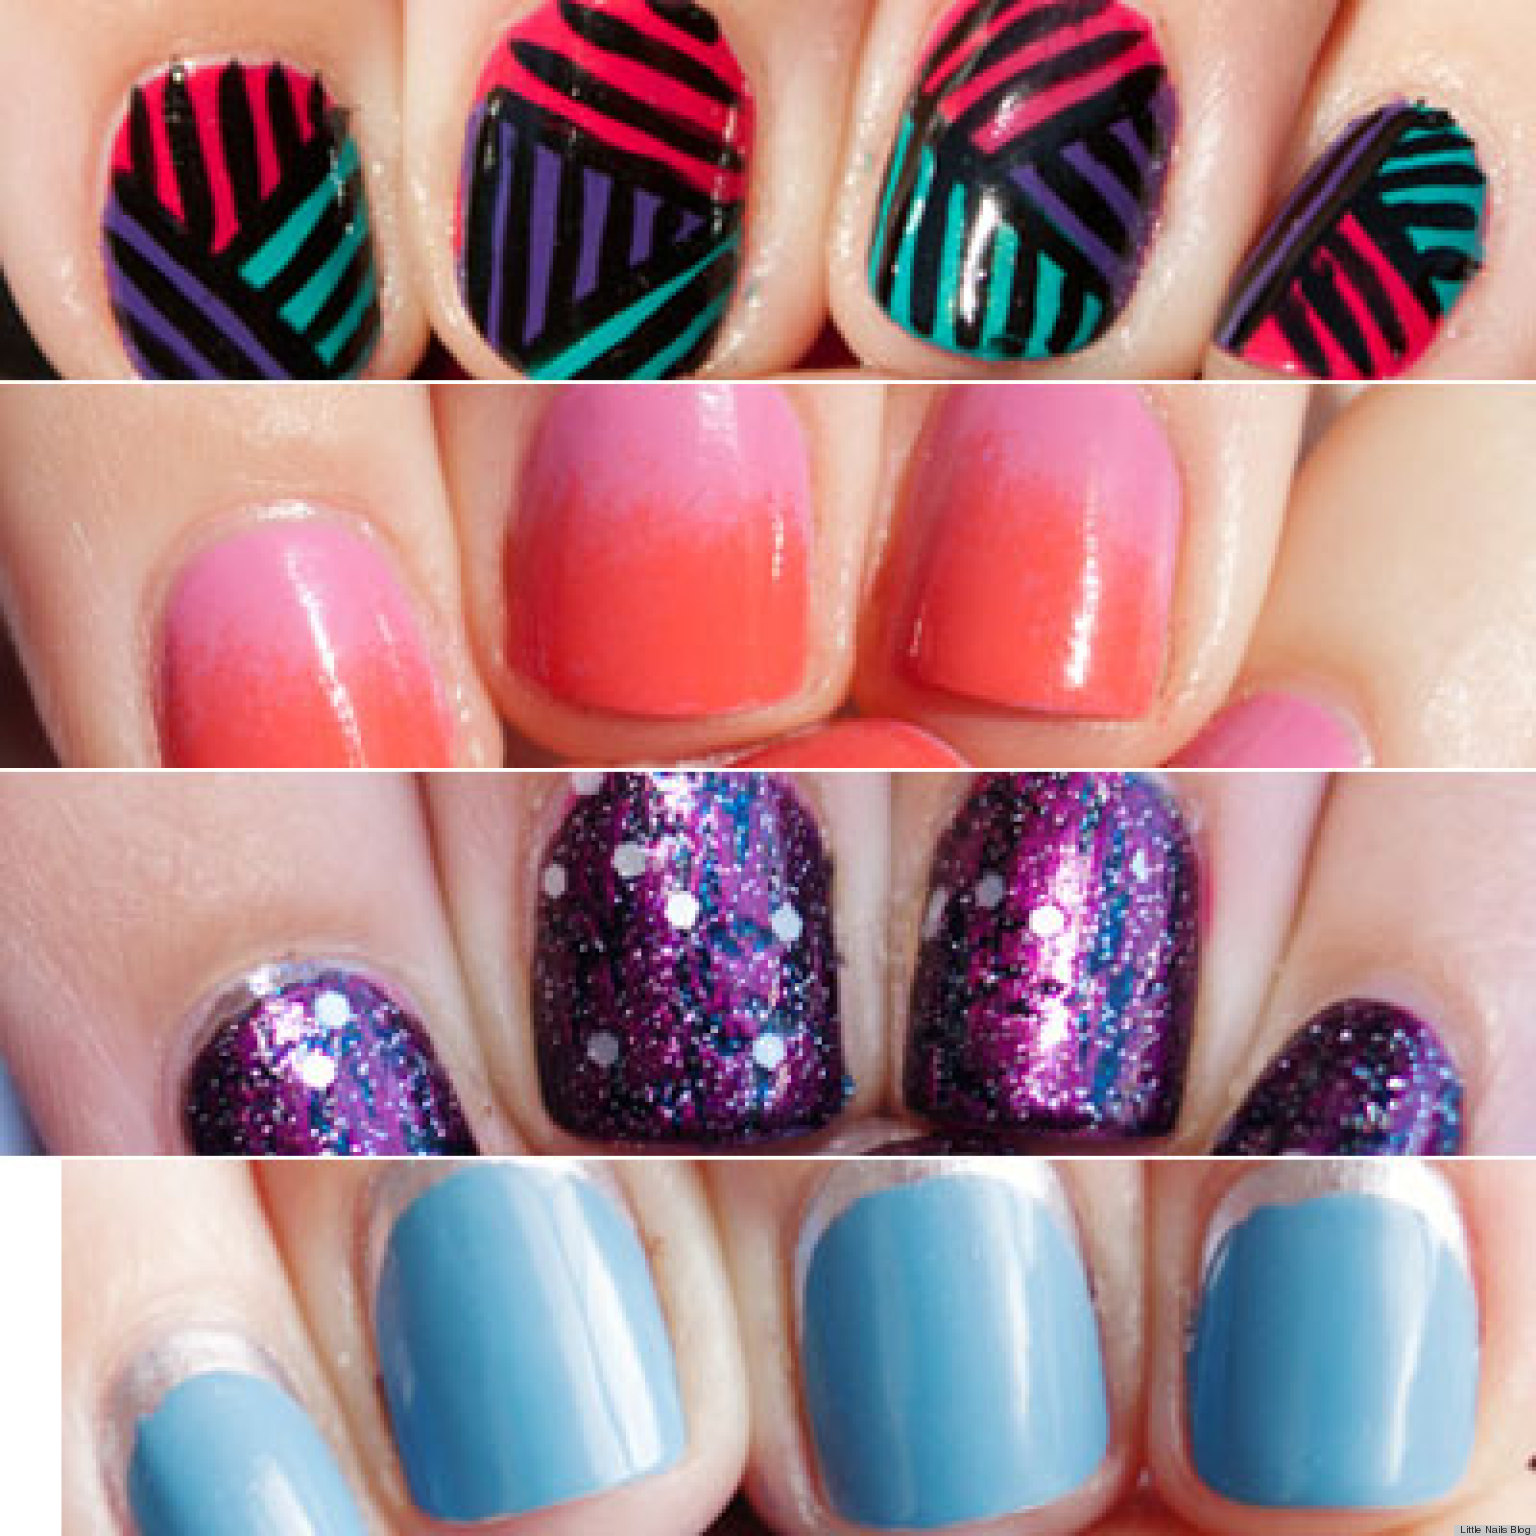 13 Nail Art Ideas For Teeny Tiny Fingertips Photos: 13 Nail Art Ideas For Teeny Tiny Fingertips (PHOTOS